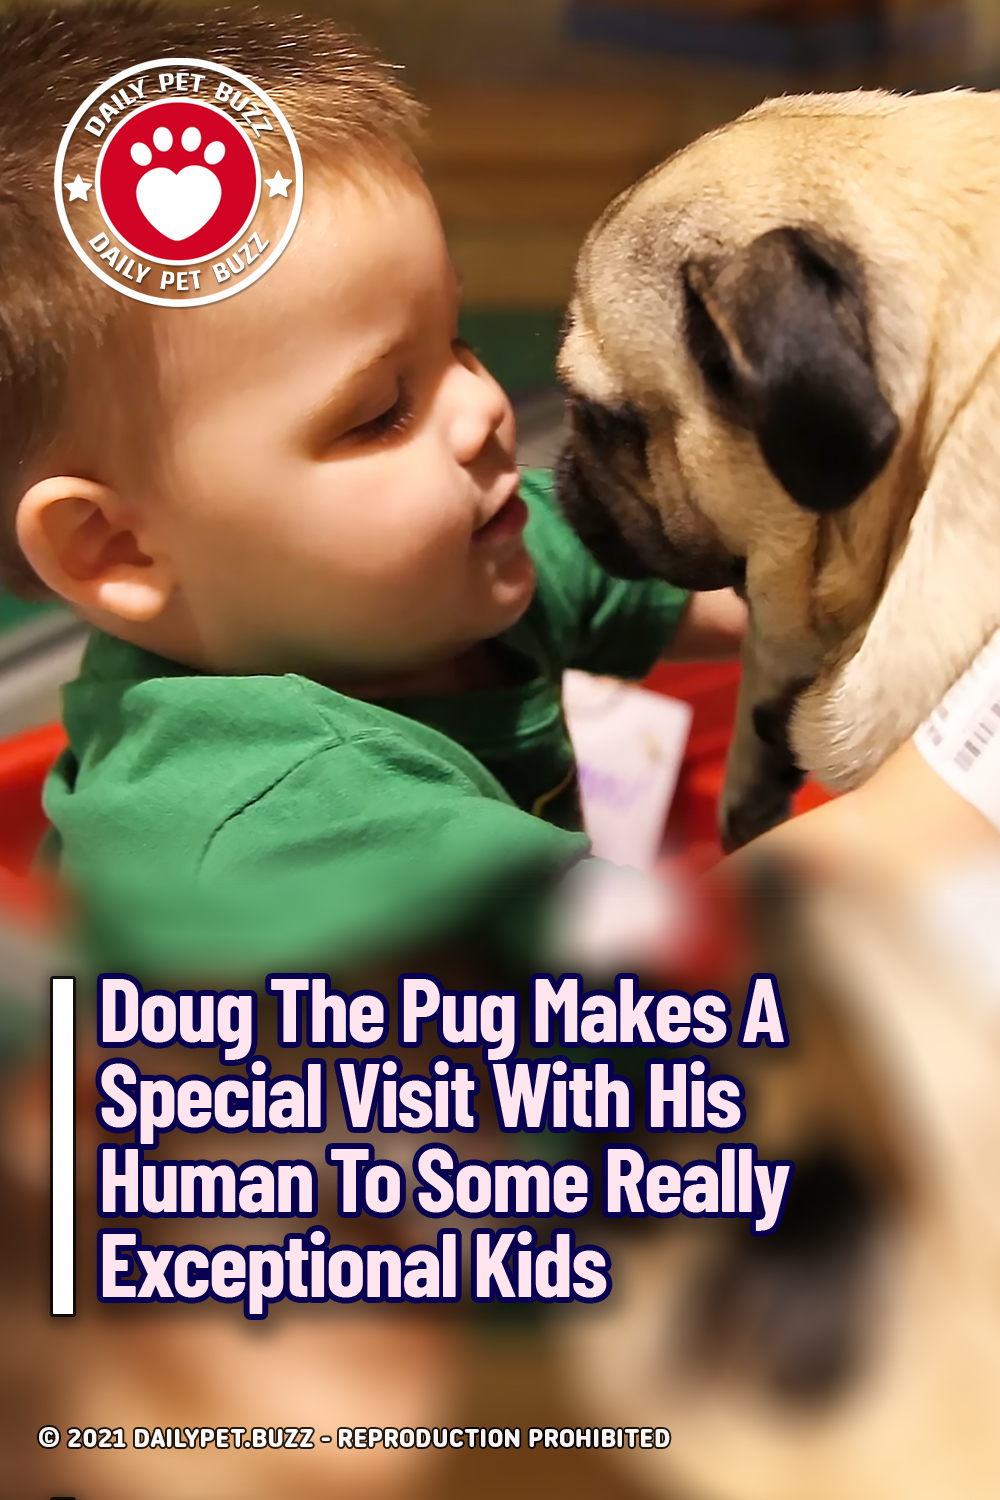 Doug The Pug Makes A Special Visit With His Human To Some Really Exceptional Kids